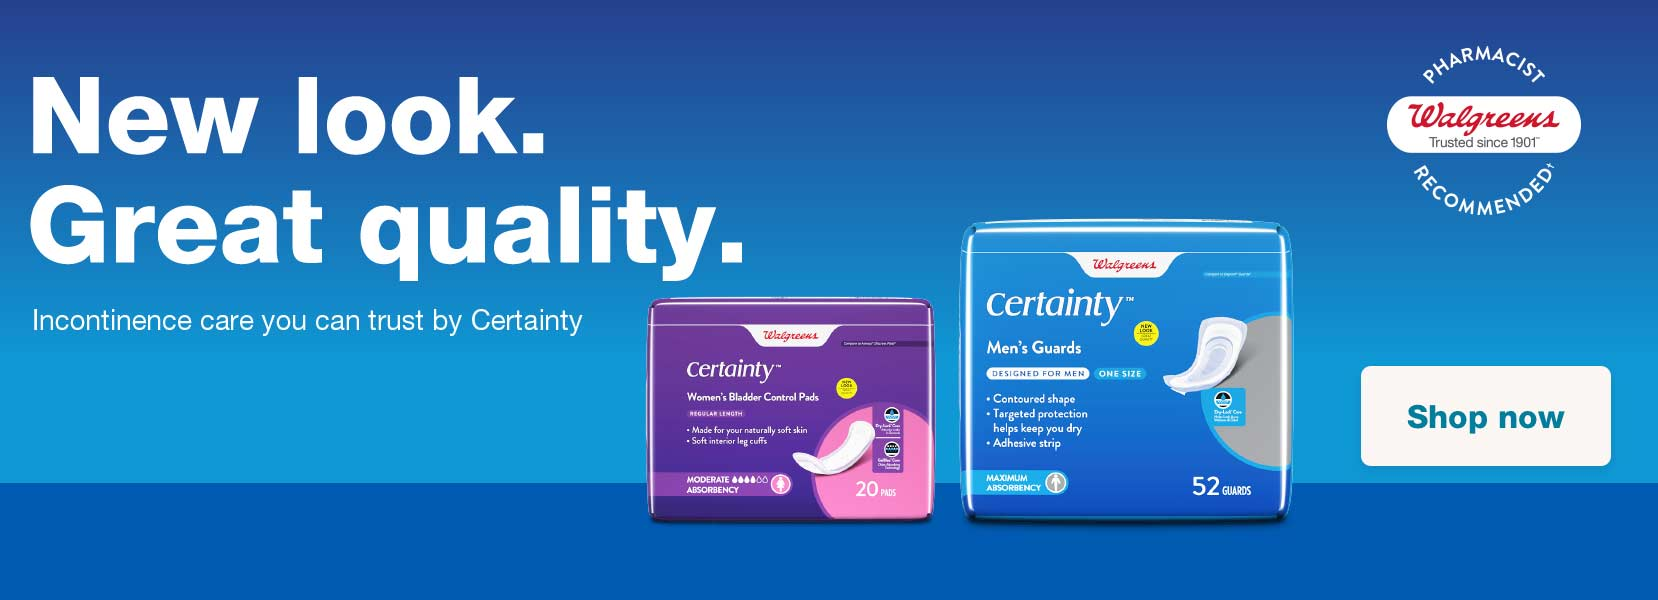 New look. Great quality. Incontinence care you can trust by Certainty. Walgreens Pharmacist Recommended(R). Shop now.